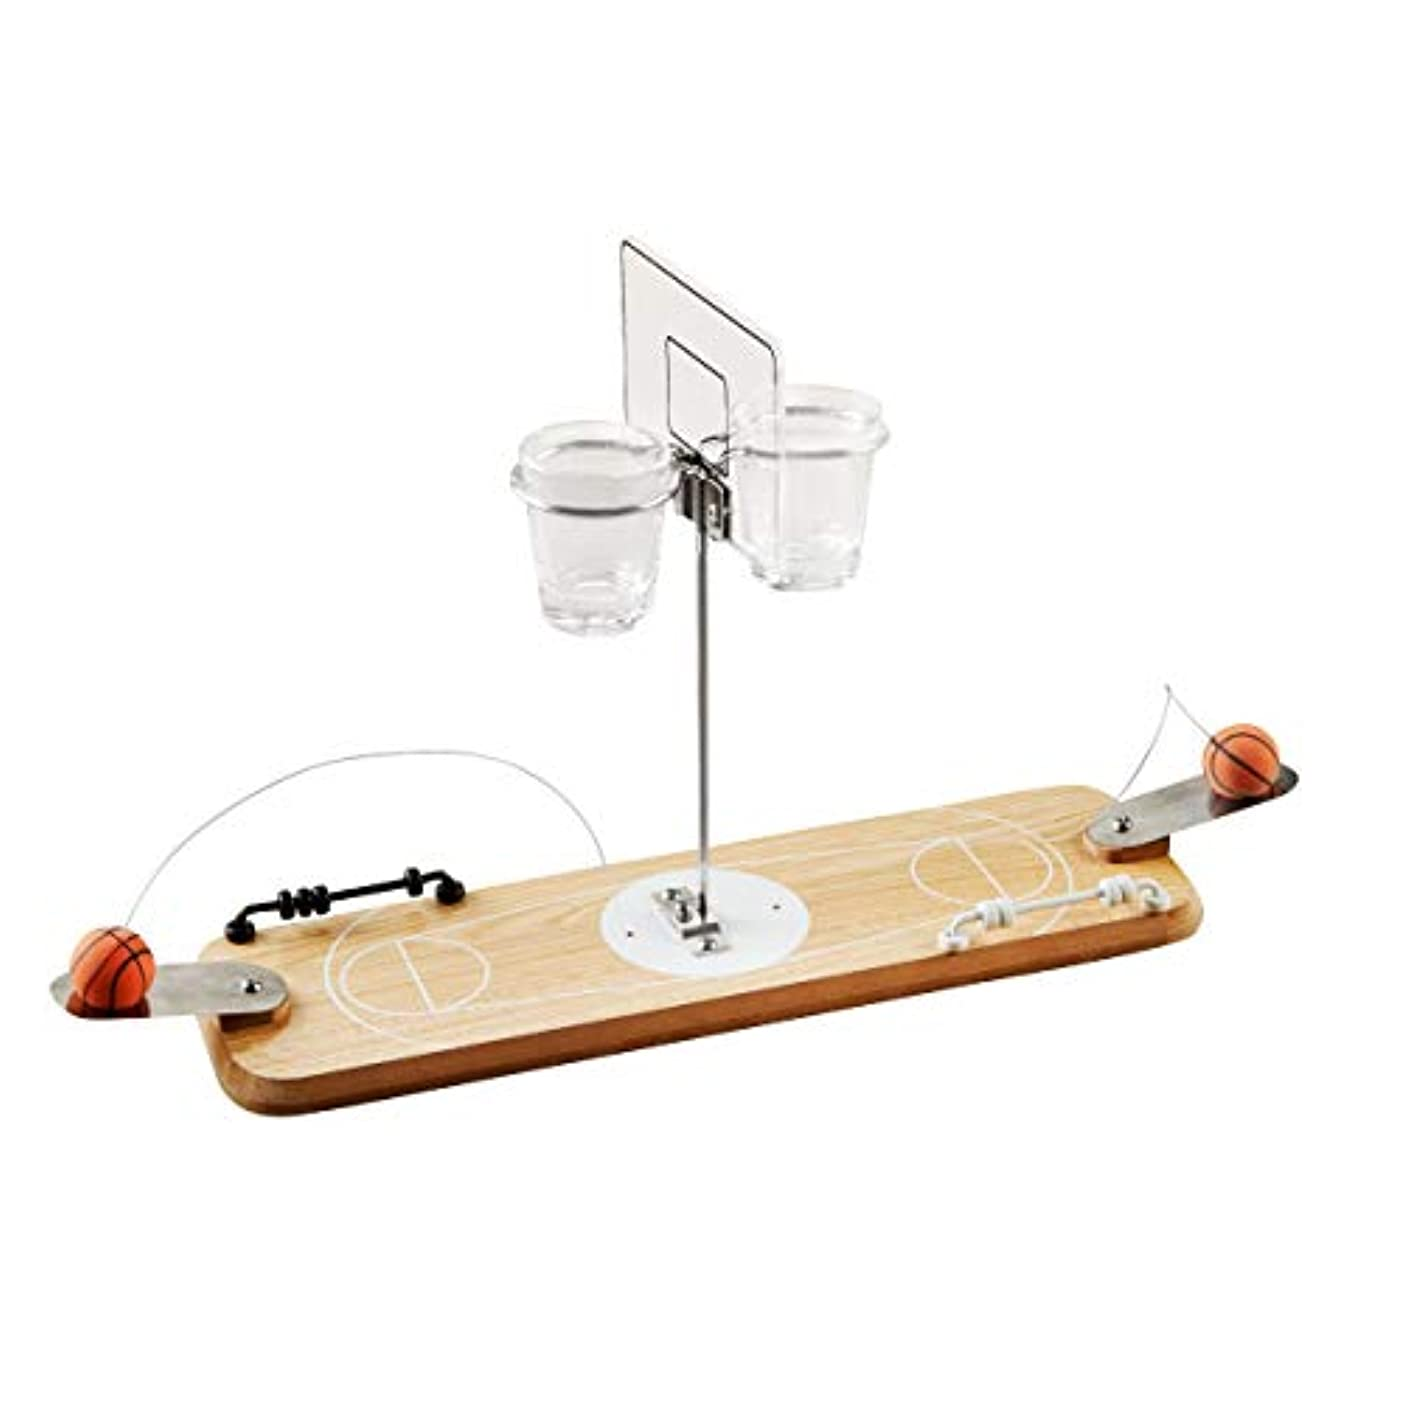 Refinery 2-Player Wooden Basketball Game, Vintage-Inspired Tabletop Hoops, 2 Shot Glass Baskets for Extra Fun, Drinking Game for Adults, Perfect for Bar or Man Cave, Keep Score with Sliding Rings